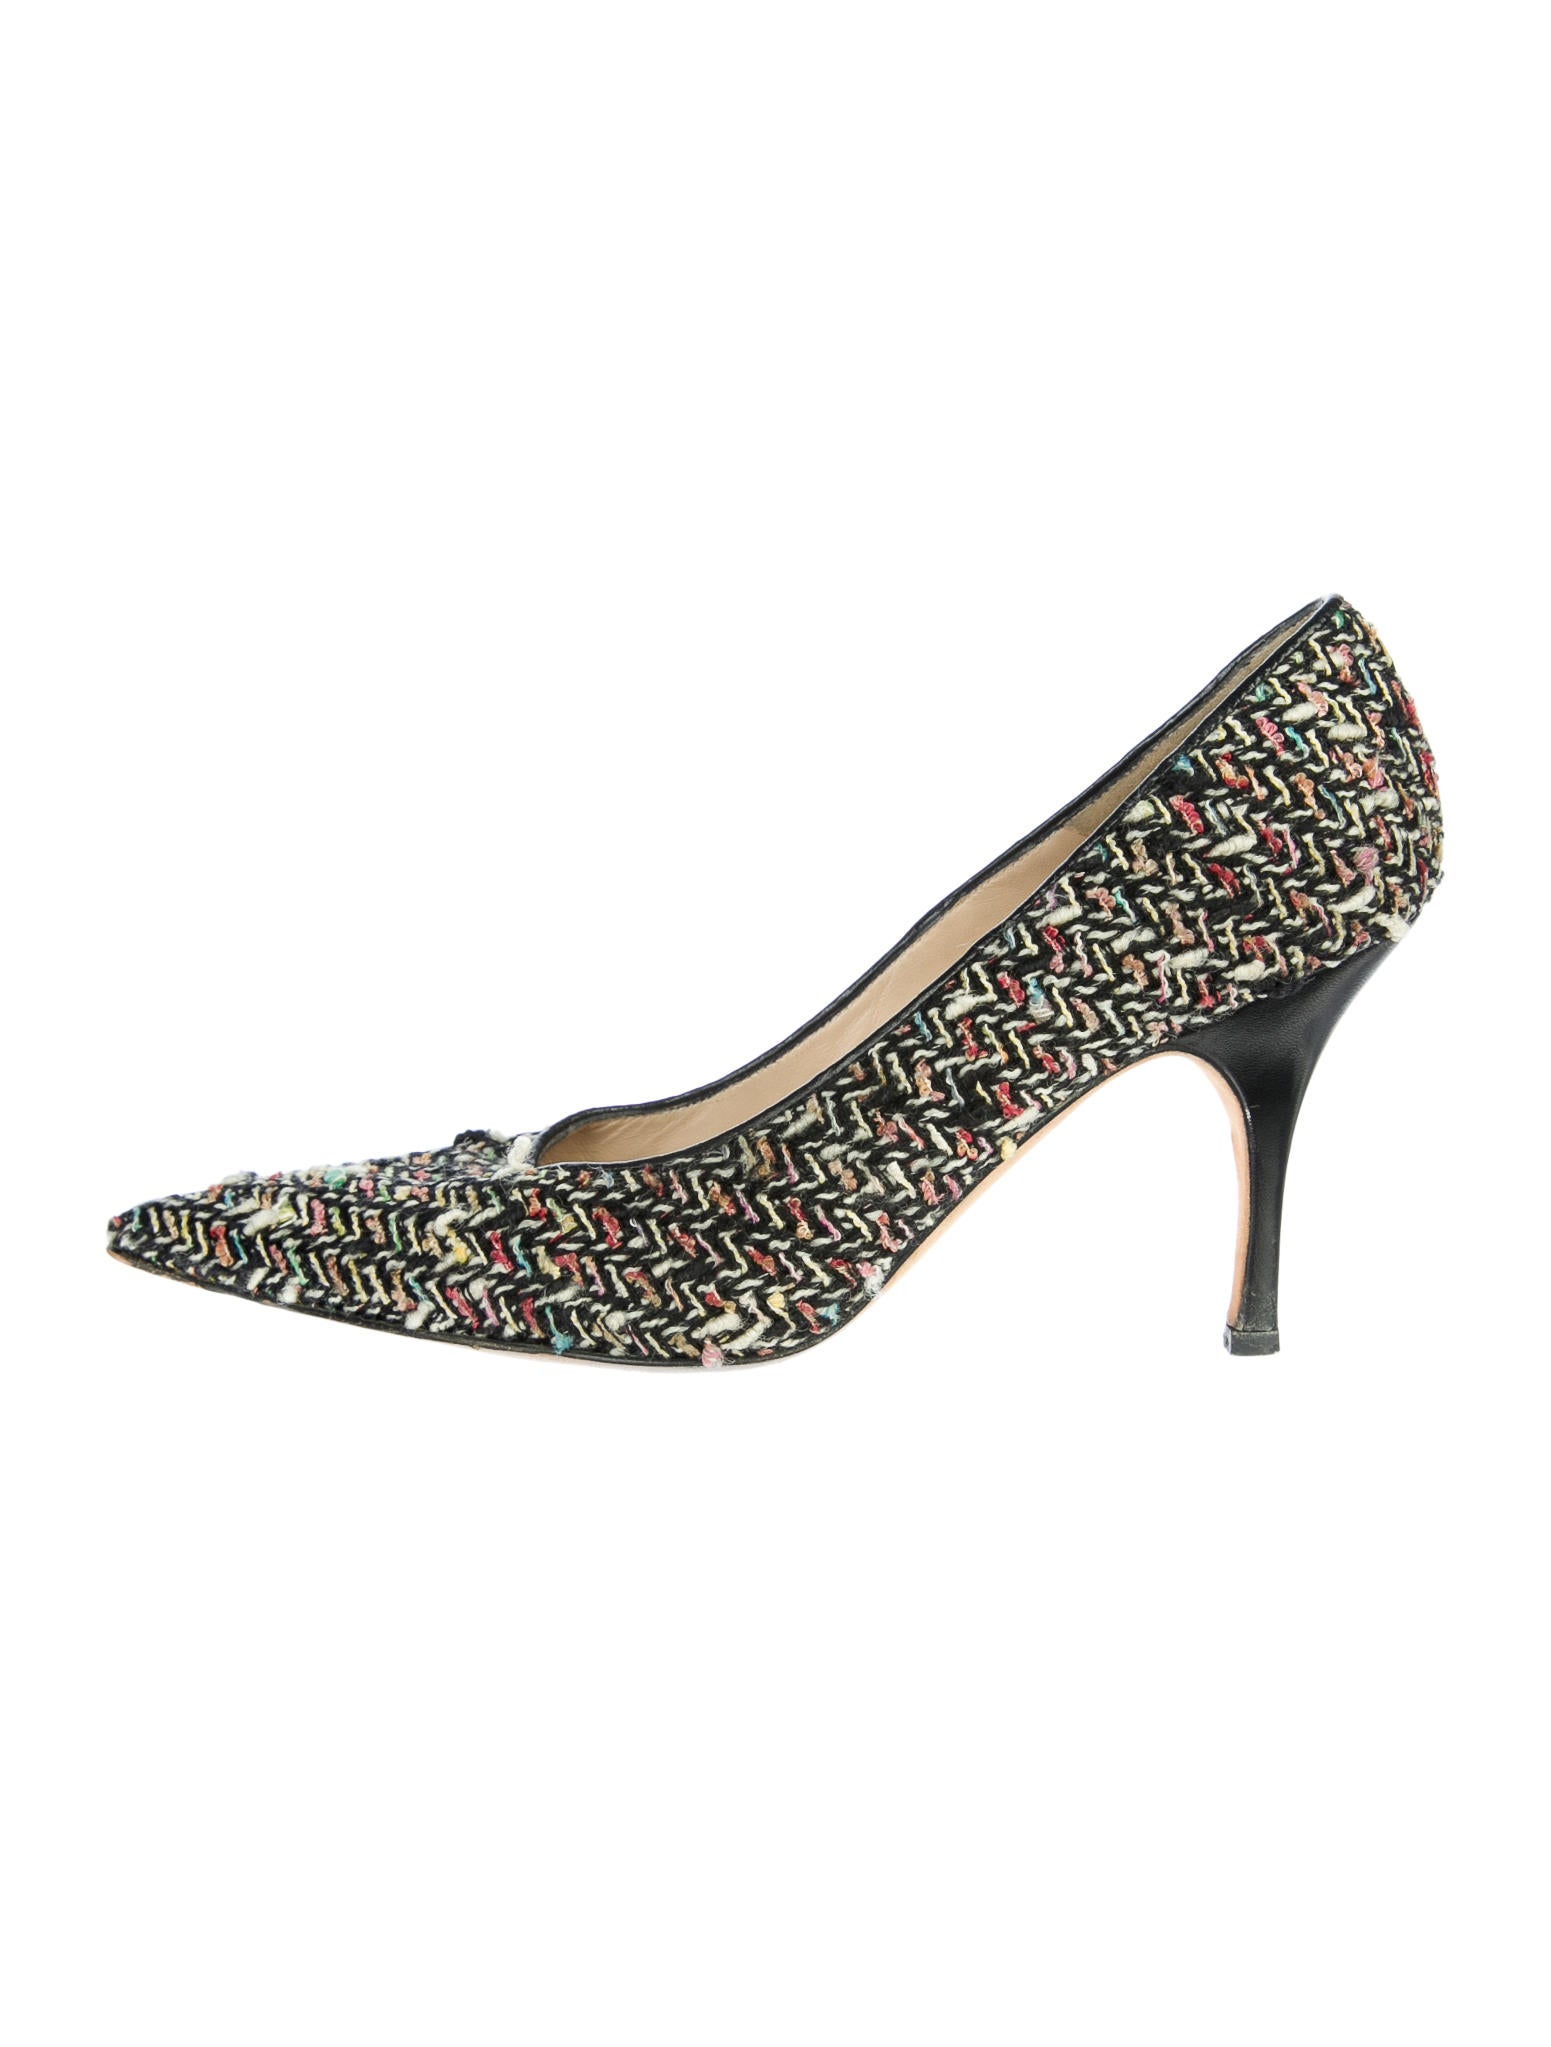 Manolo Blahnik Tweed Pumps - Shoes - MOO29197 | The RealReal